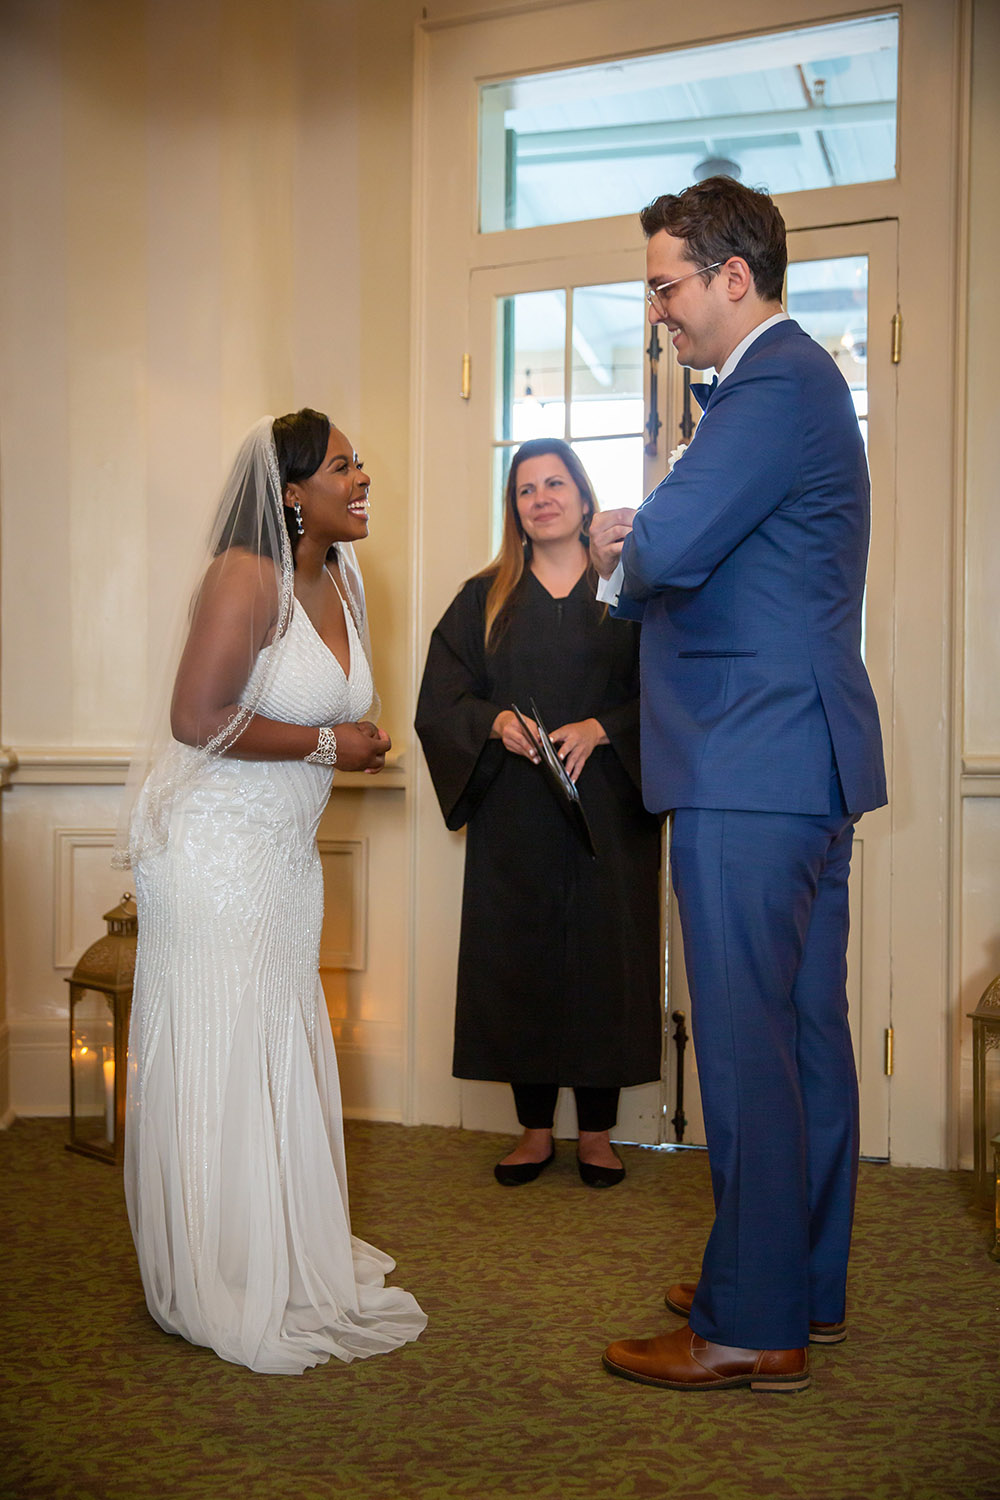 Kiara and Michael exchange vows with Michele Zeller officiating. Photo: Brian Jarreau Photography